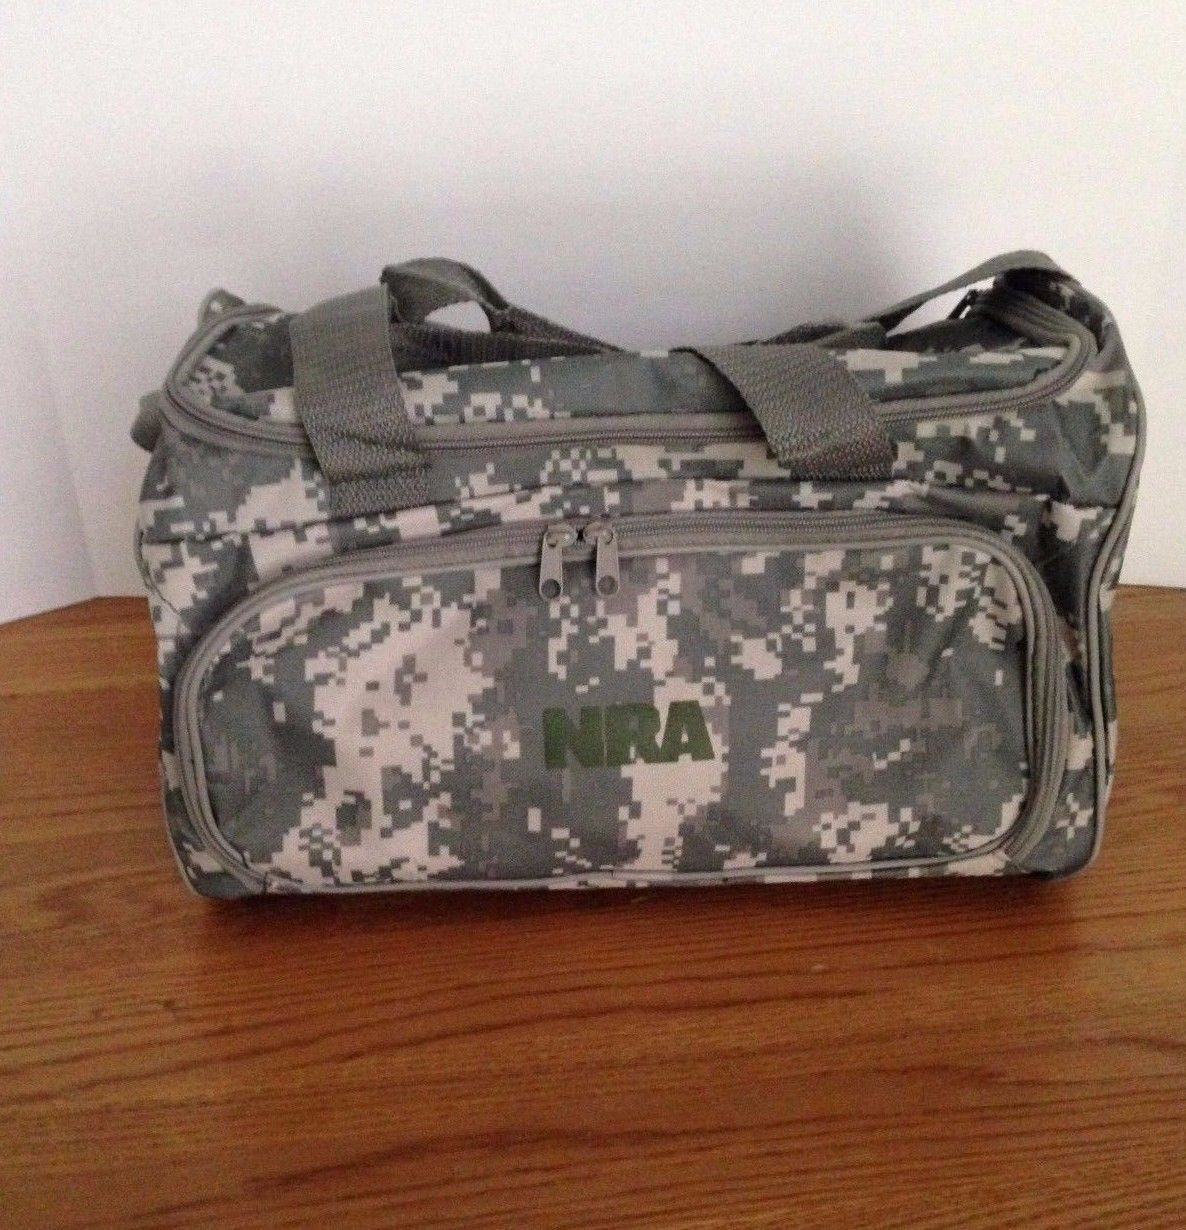 c6833e3f3cfc NRA Digital Camo Duffle Bag Army Green and 50 similar items. 57